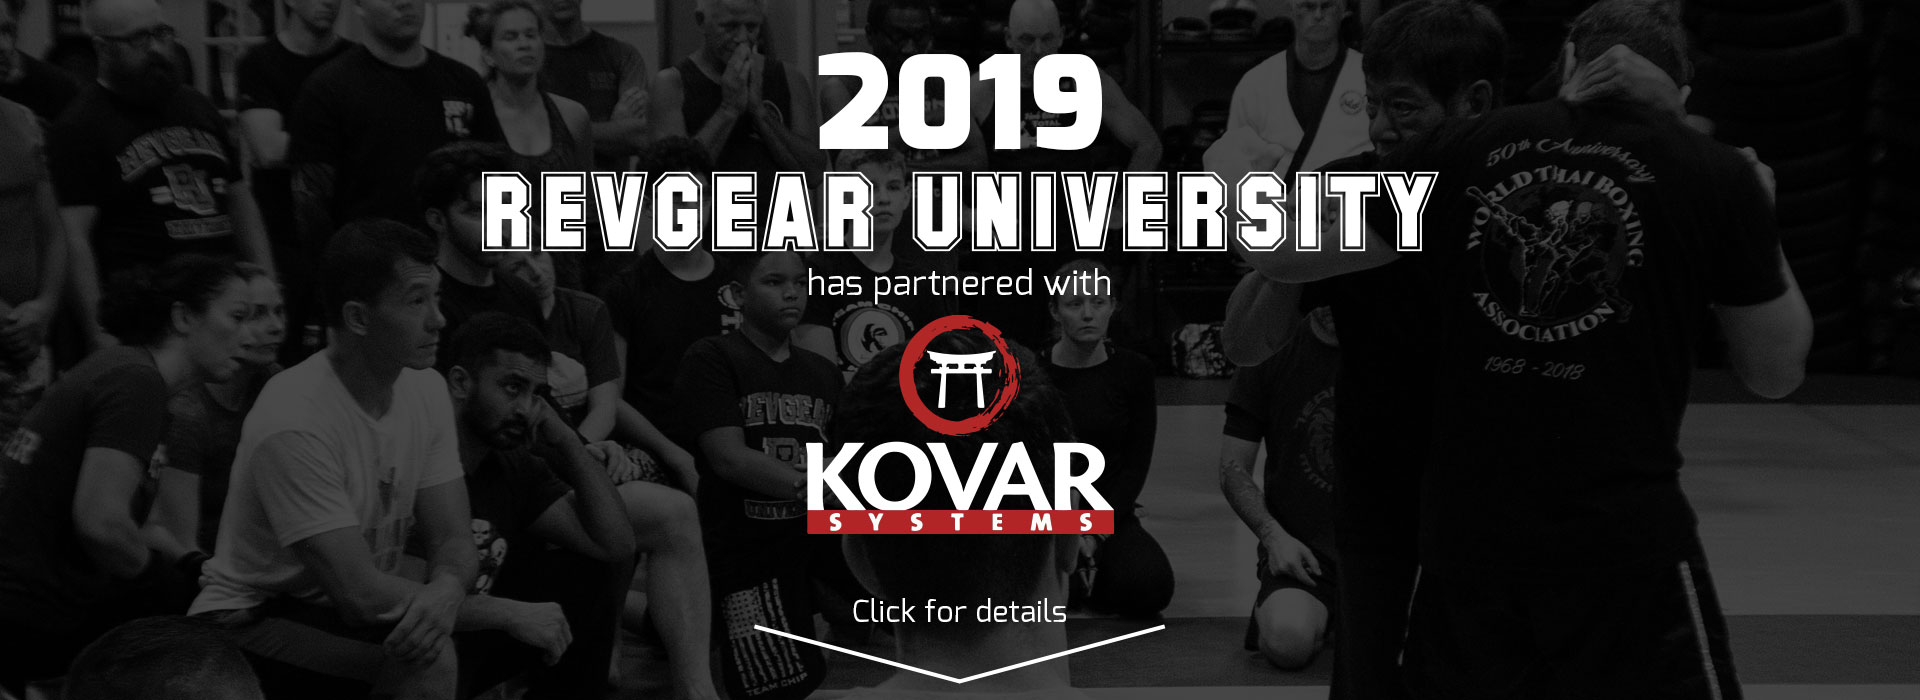 2019 Revgear University has partnered with Kovar Systems